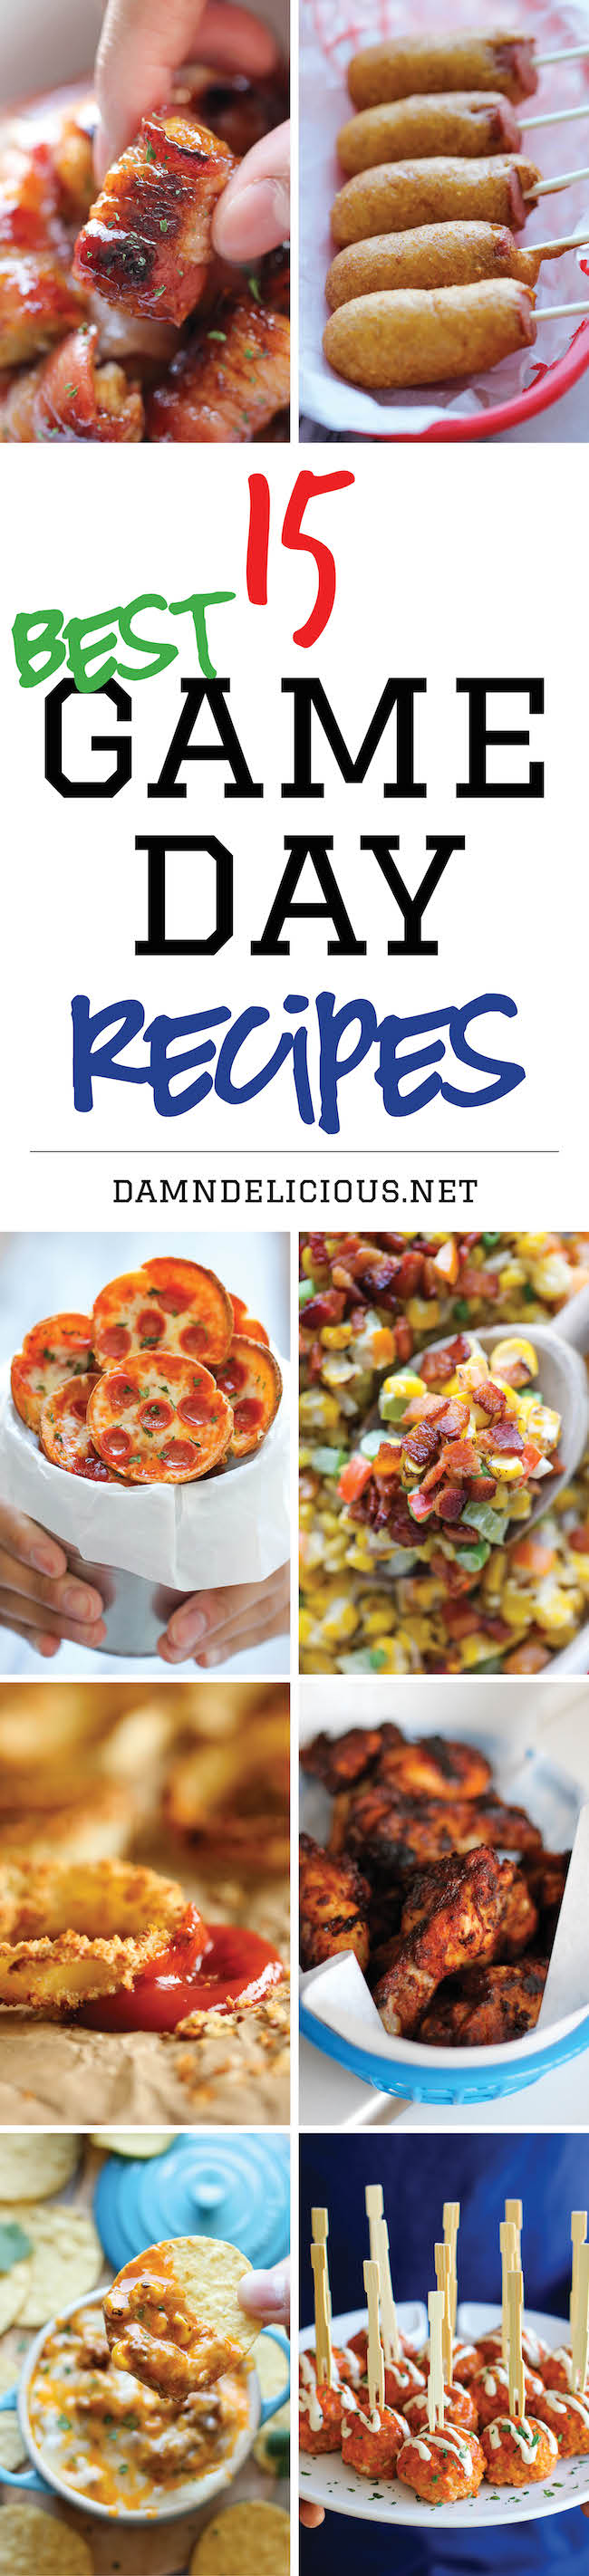 15 Best Game Day Recipes - The best and easiest recipes for game day! Just be sure to double the recipes because everyone will be begging for seconds!